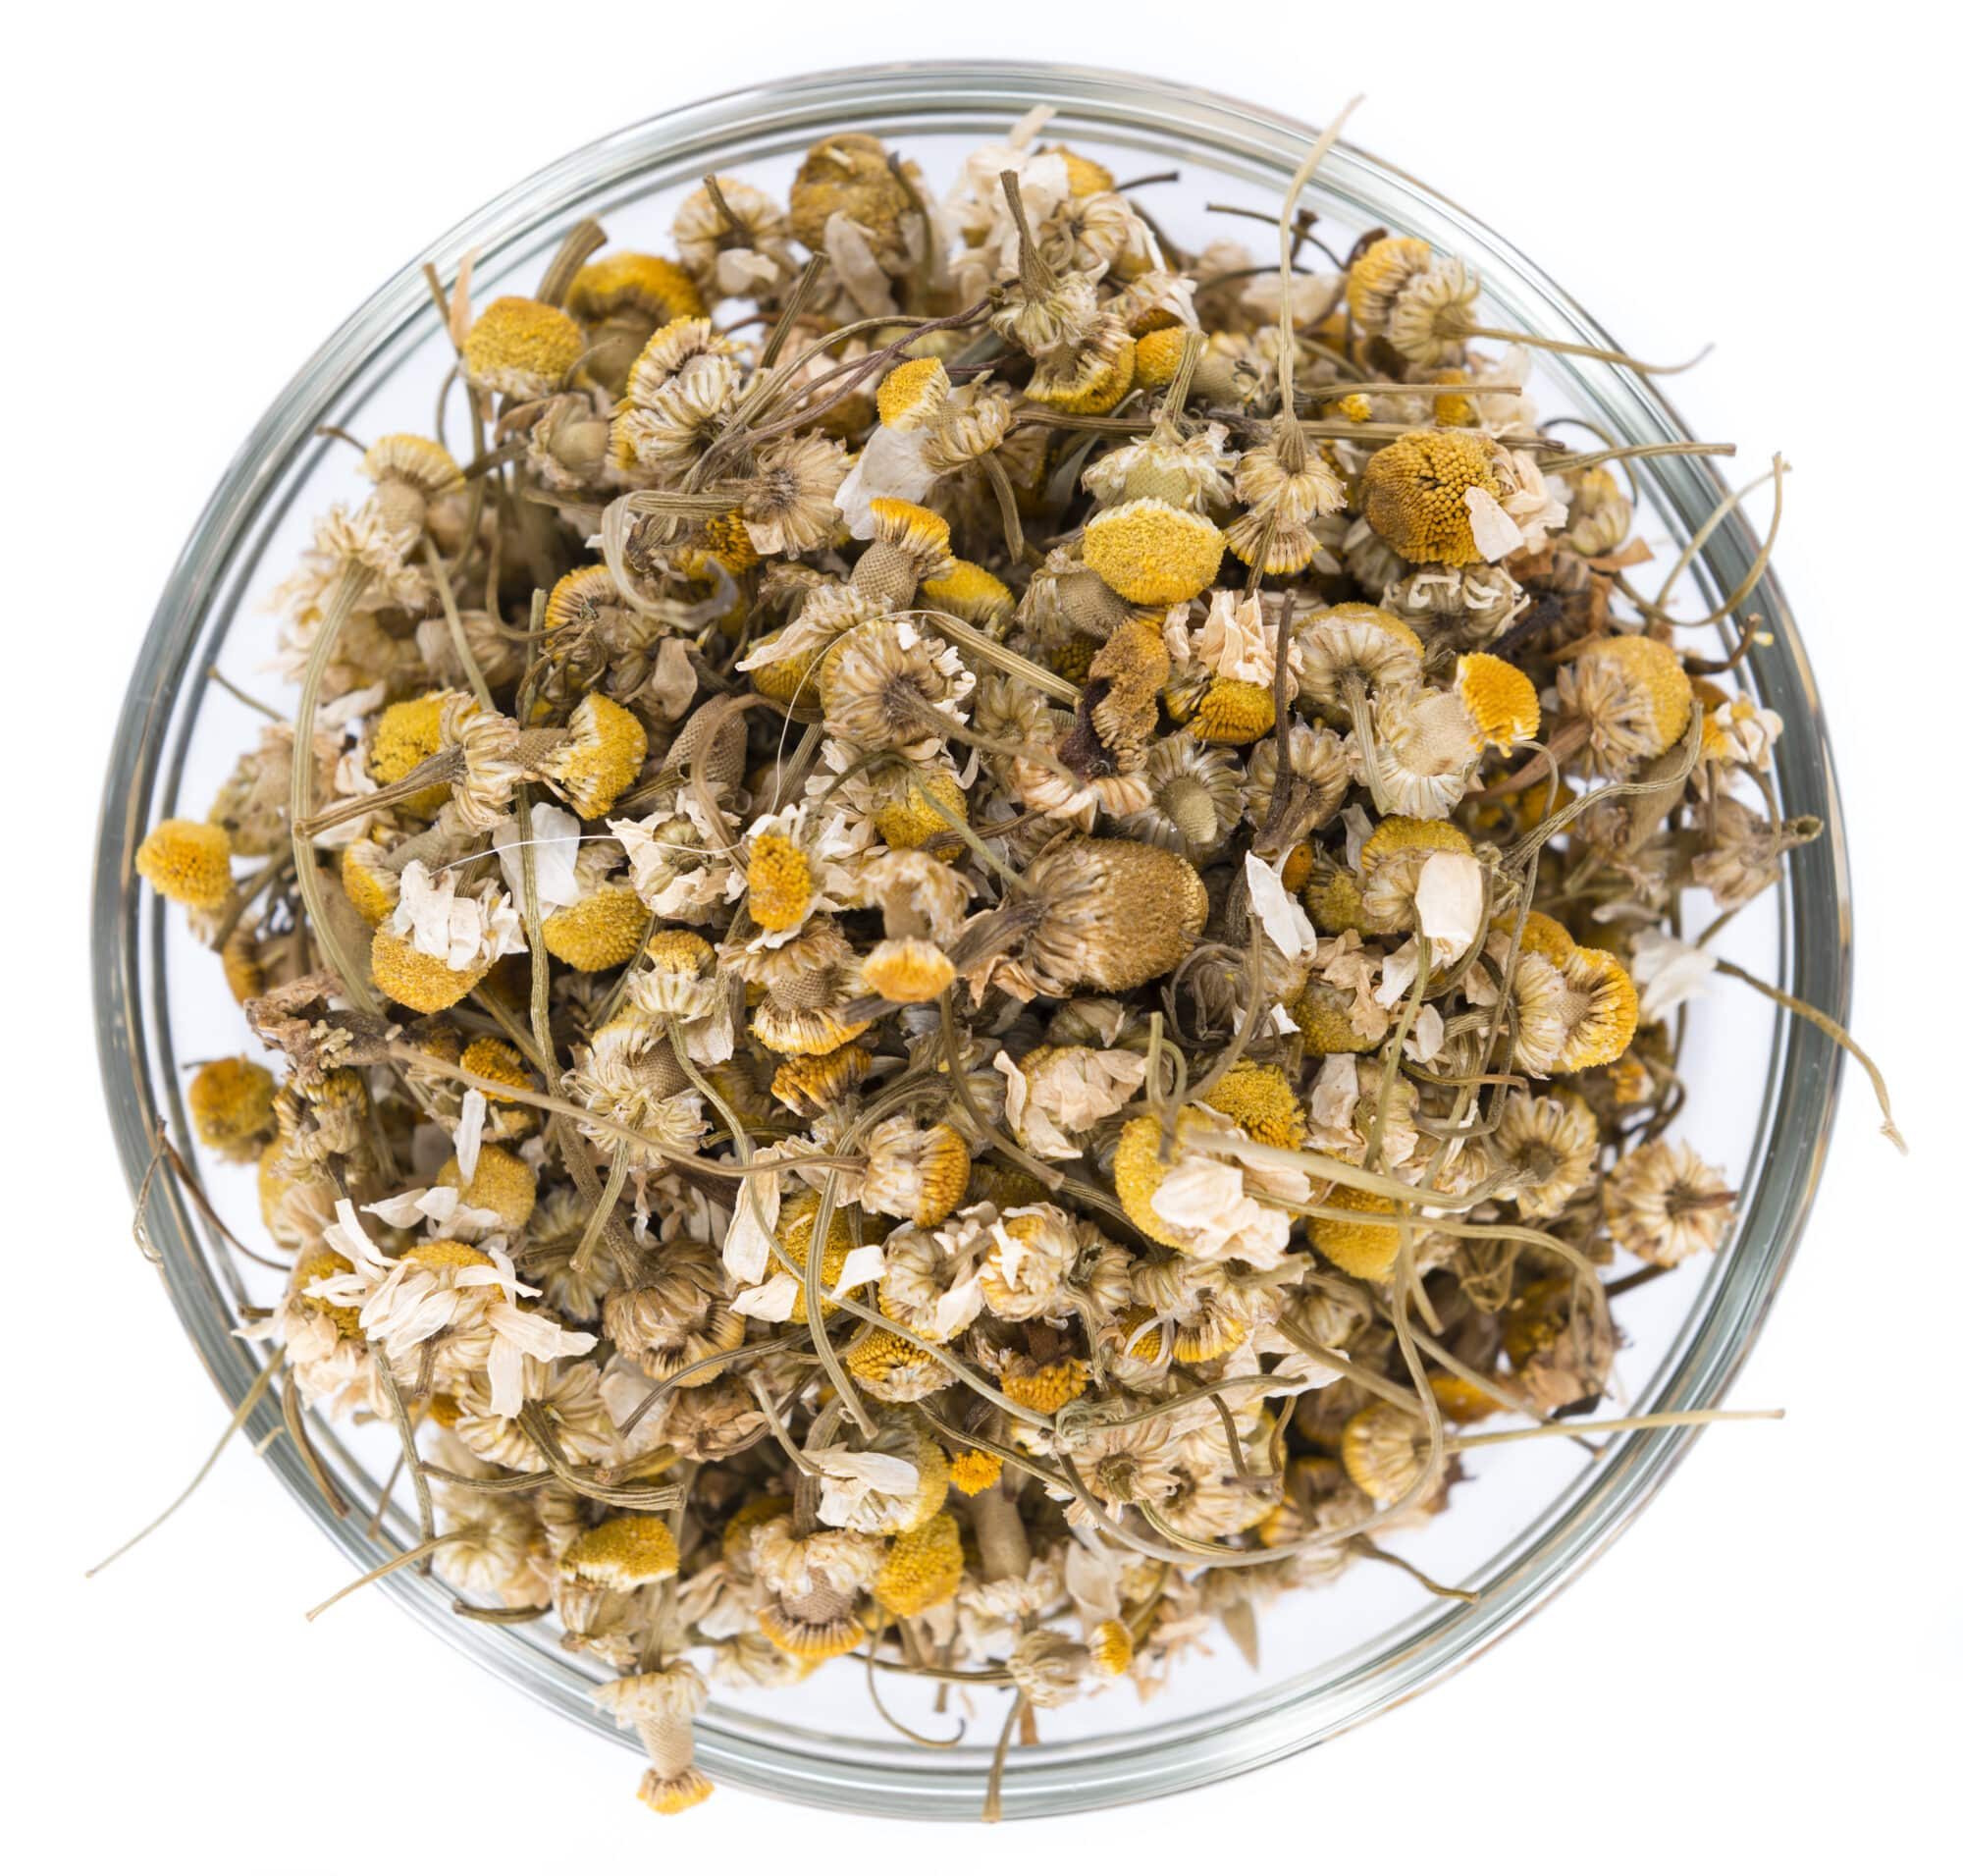 Cooking With Chamomile: The Dos And Don'ts